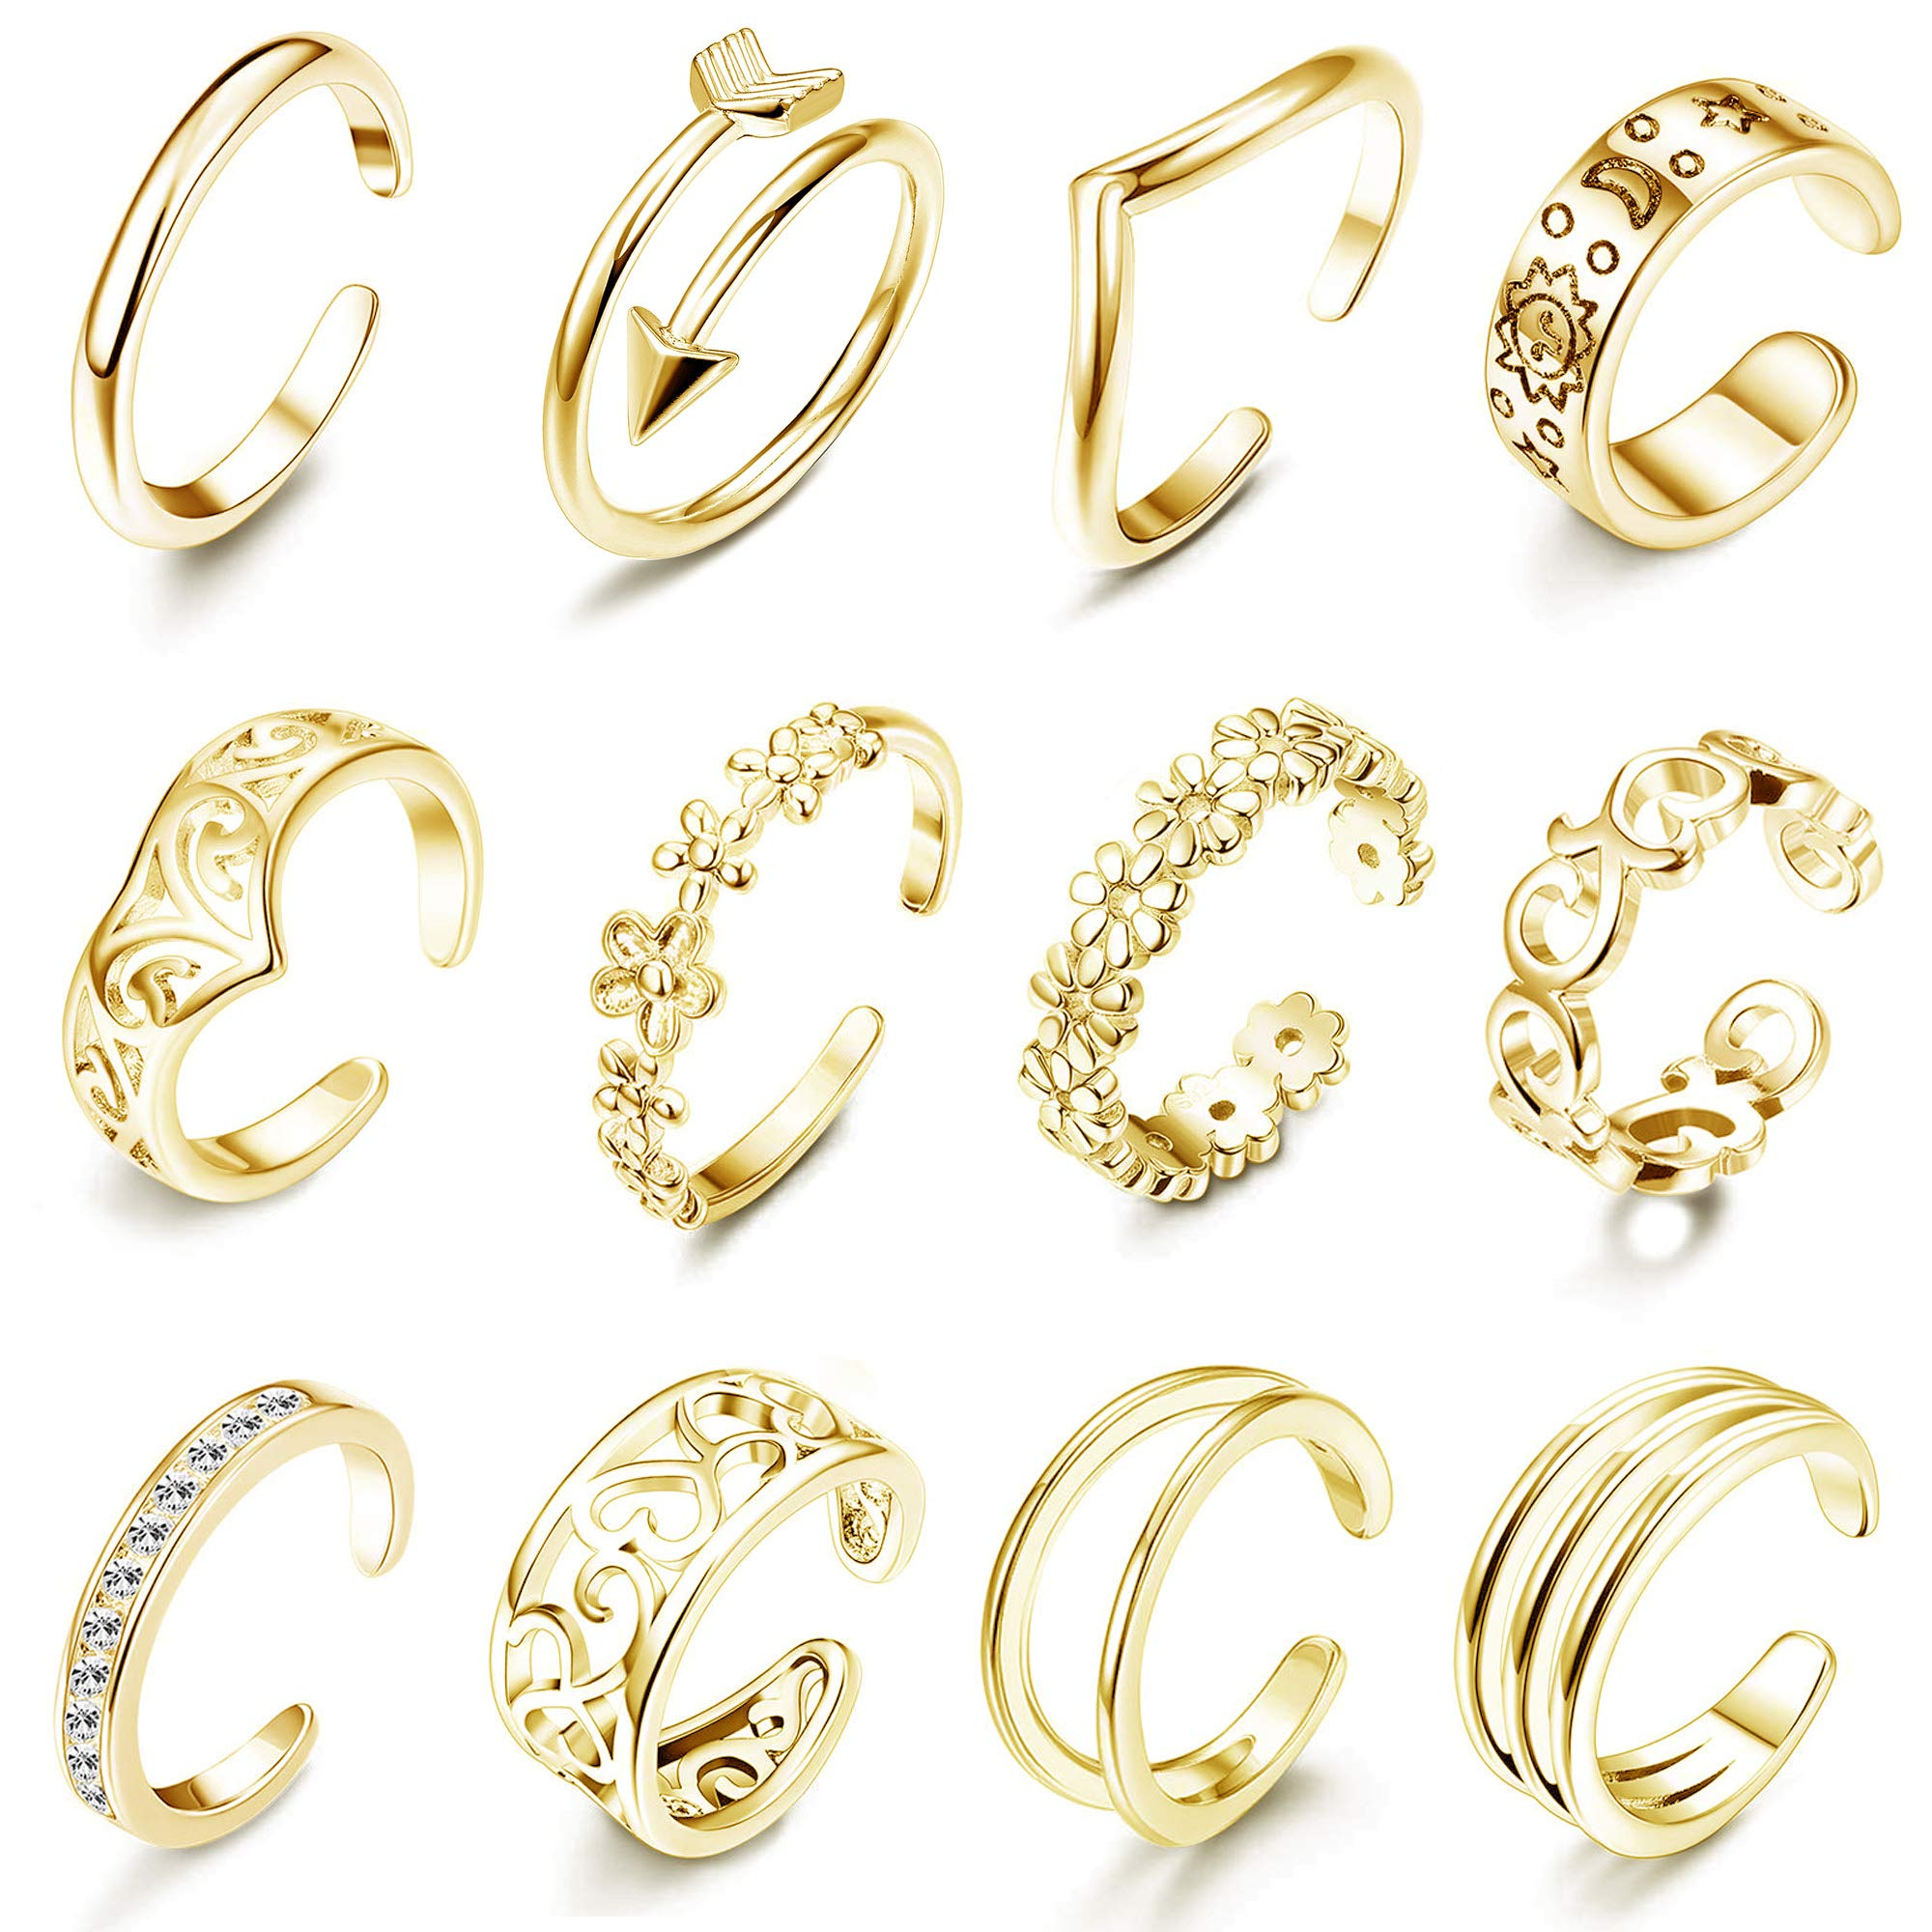 LOLIAS 12Pcs Open Toe Rings for Women Girls Arrow Adjustable Toe Band Ring Gifts Jewelry Set,Gold by LOLIAS